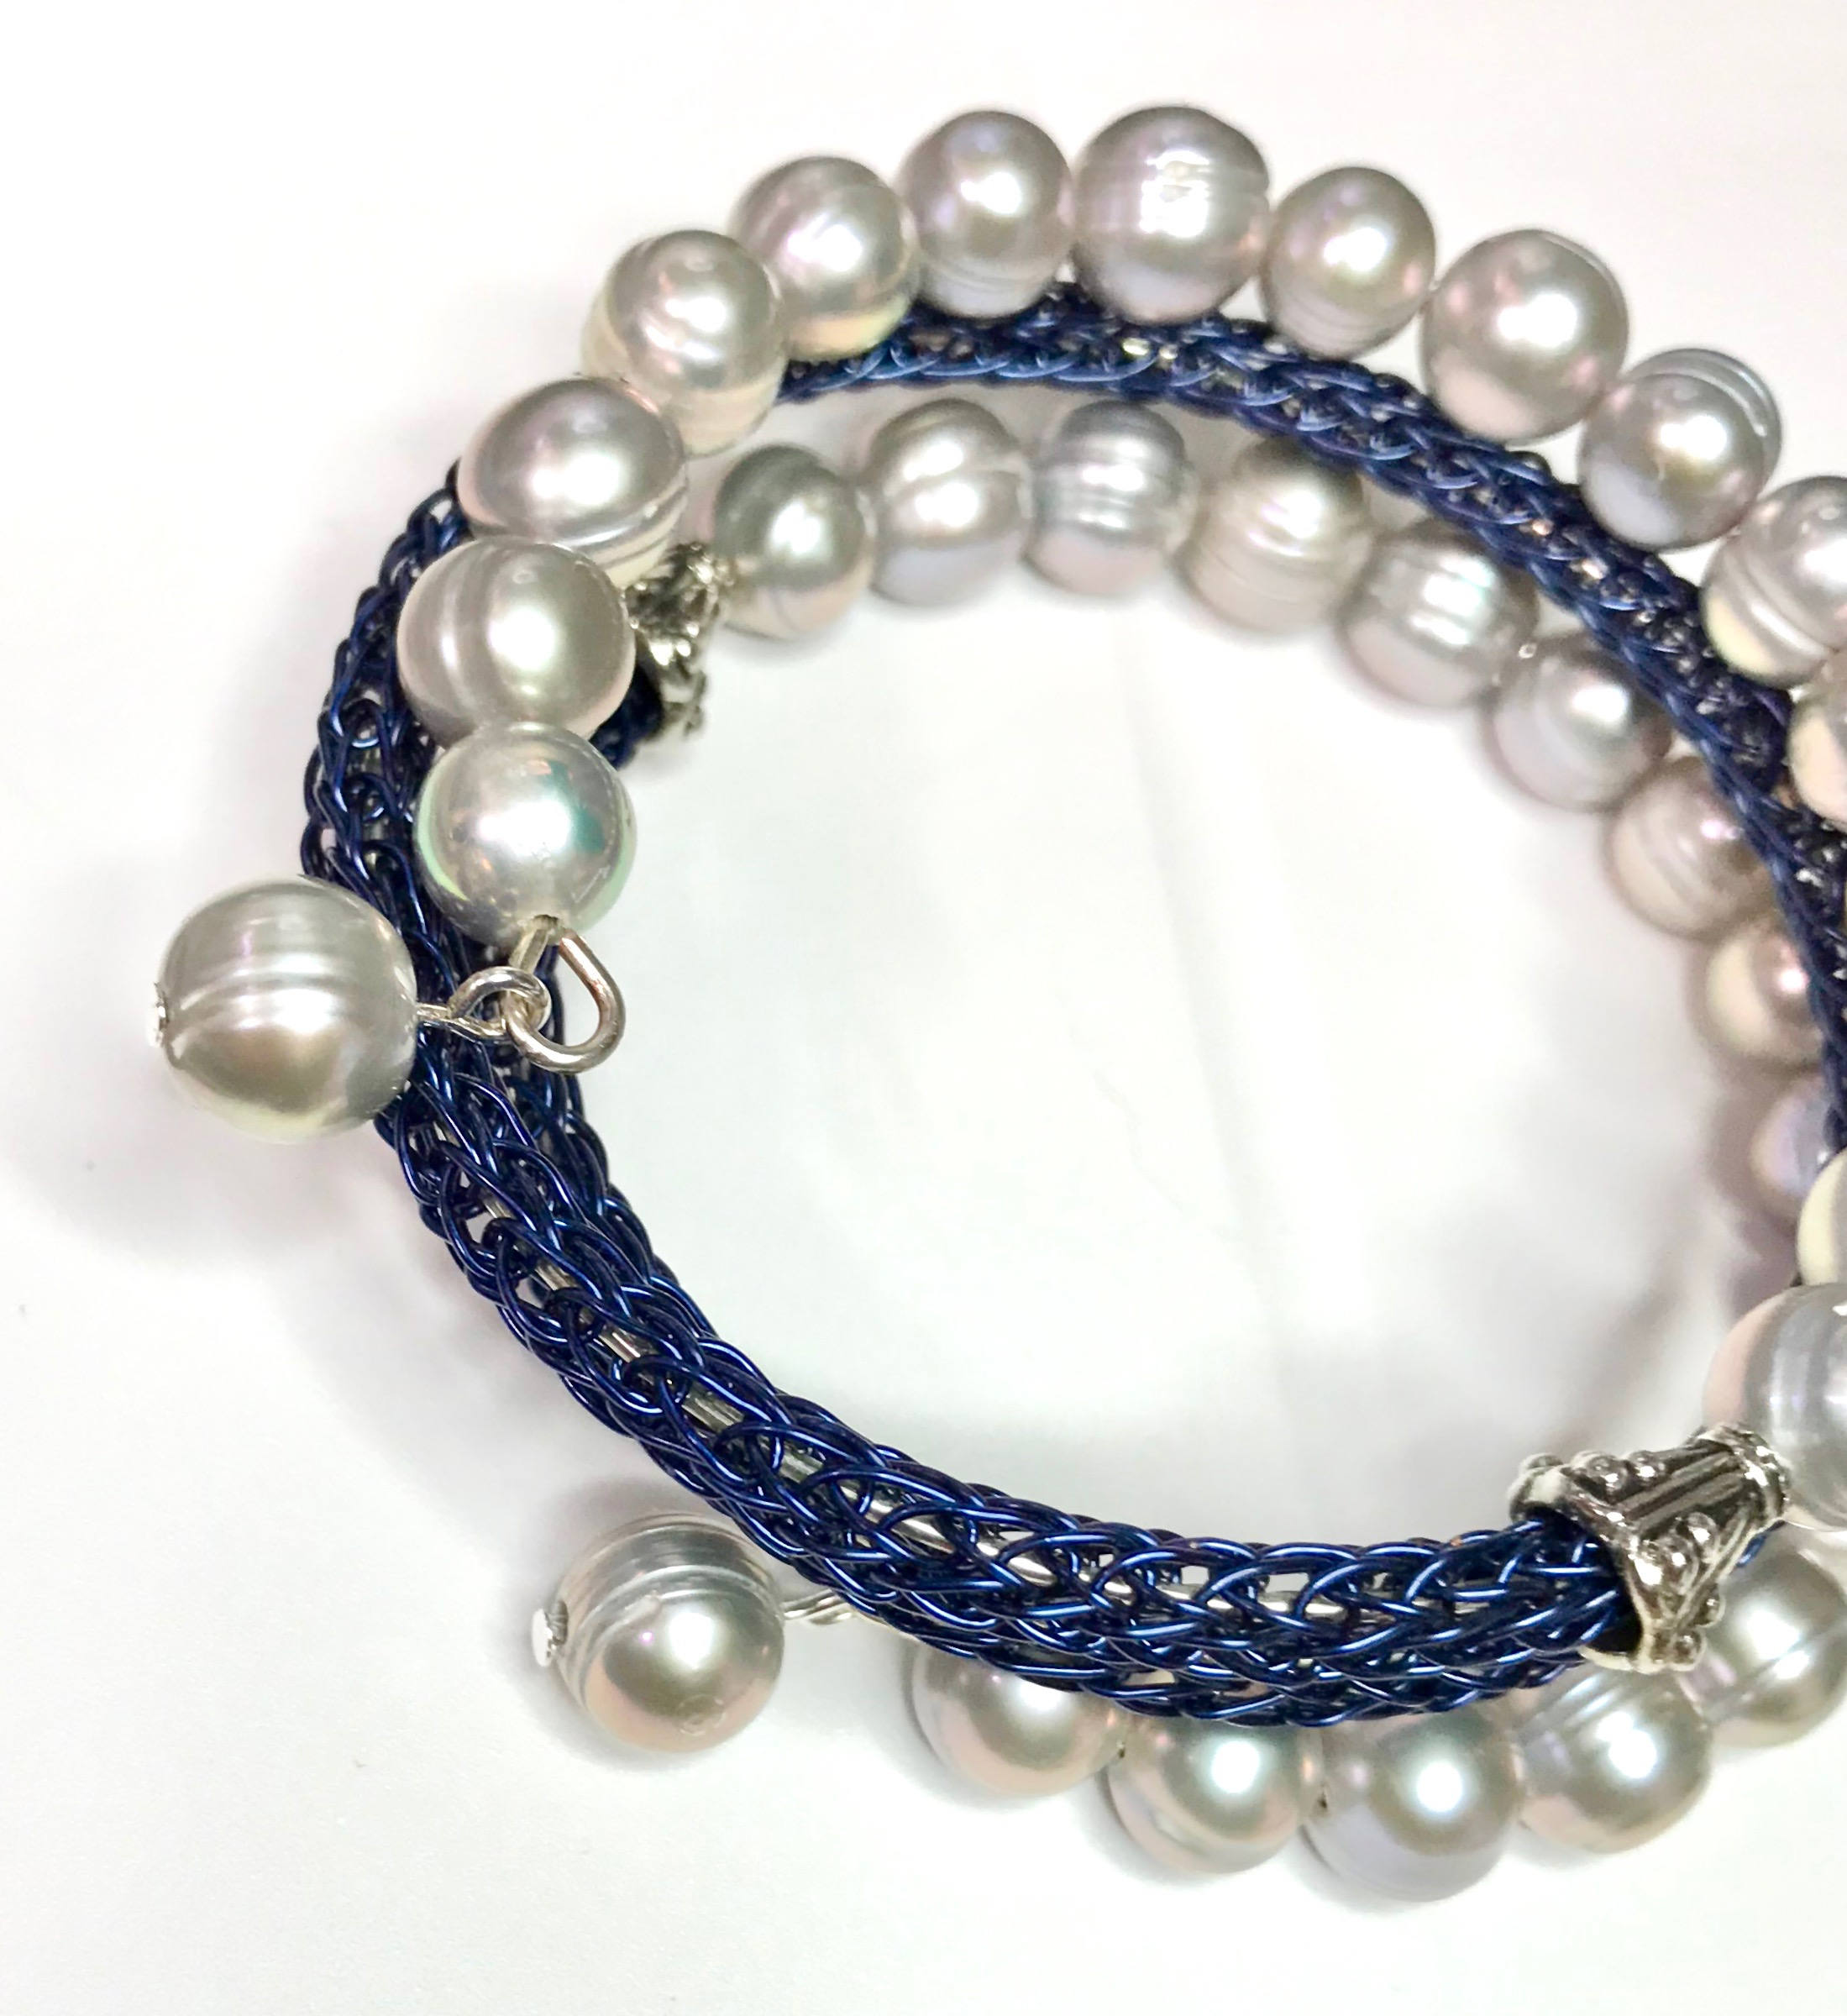 Awesome Memory Wire 4 Coil Bracelet with Gray Circlé